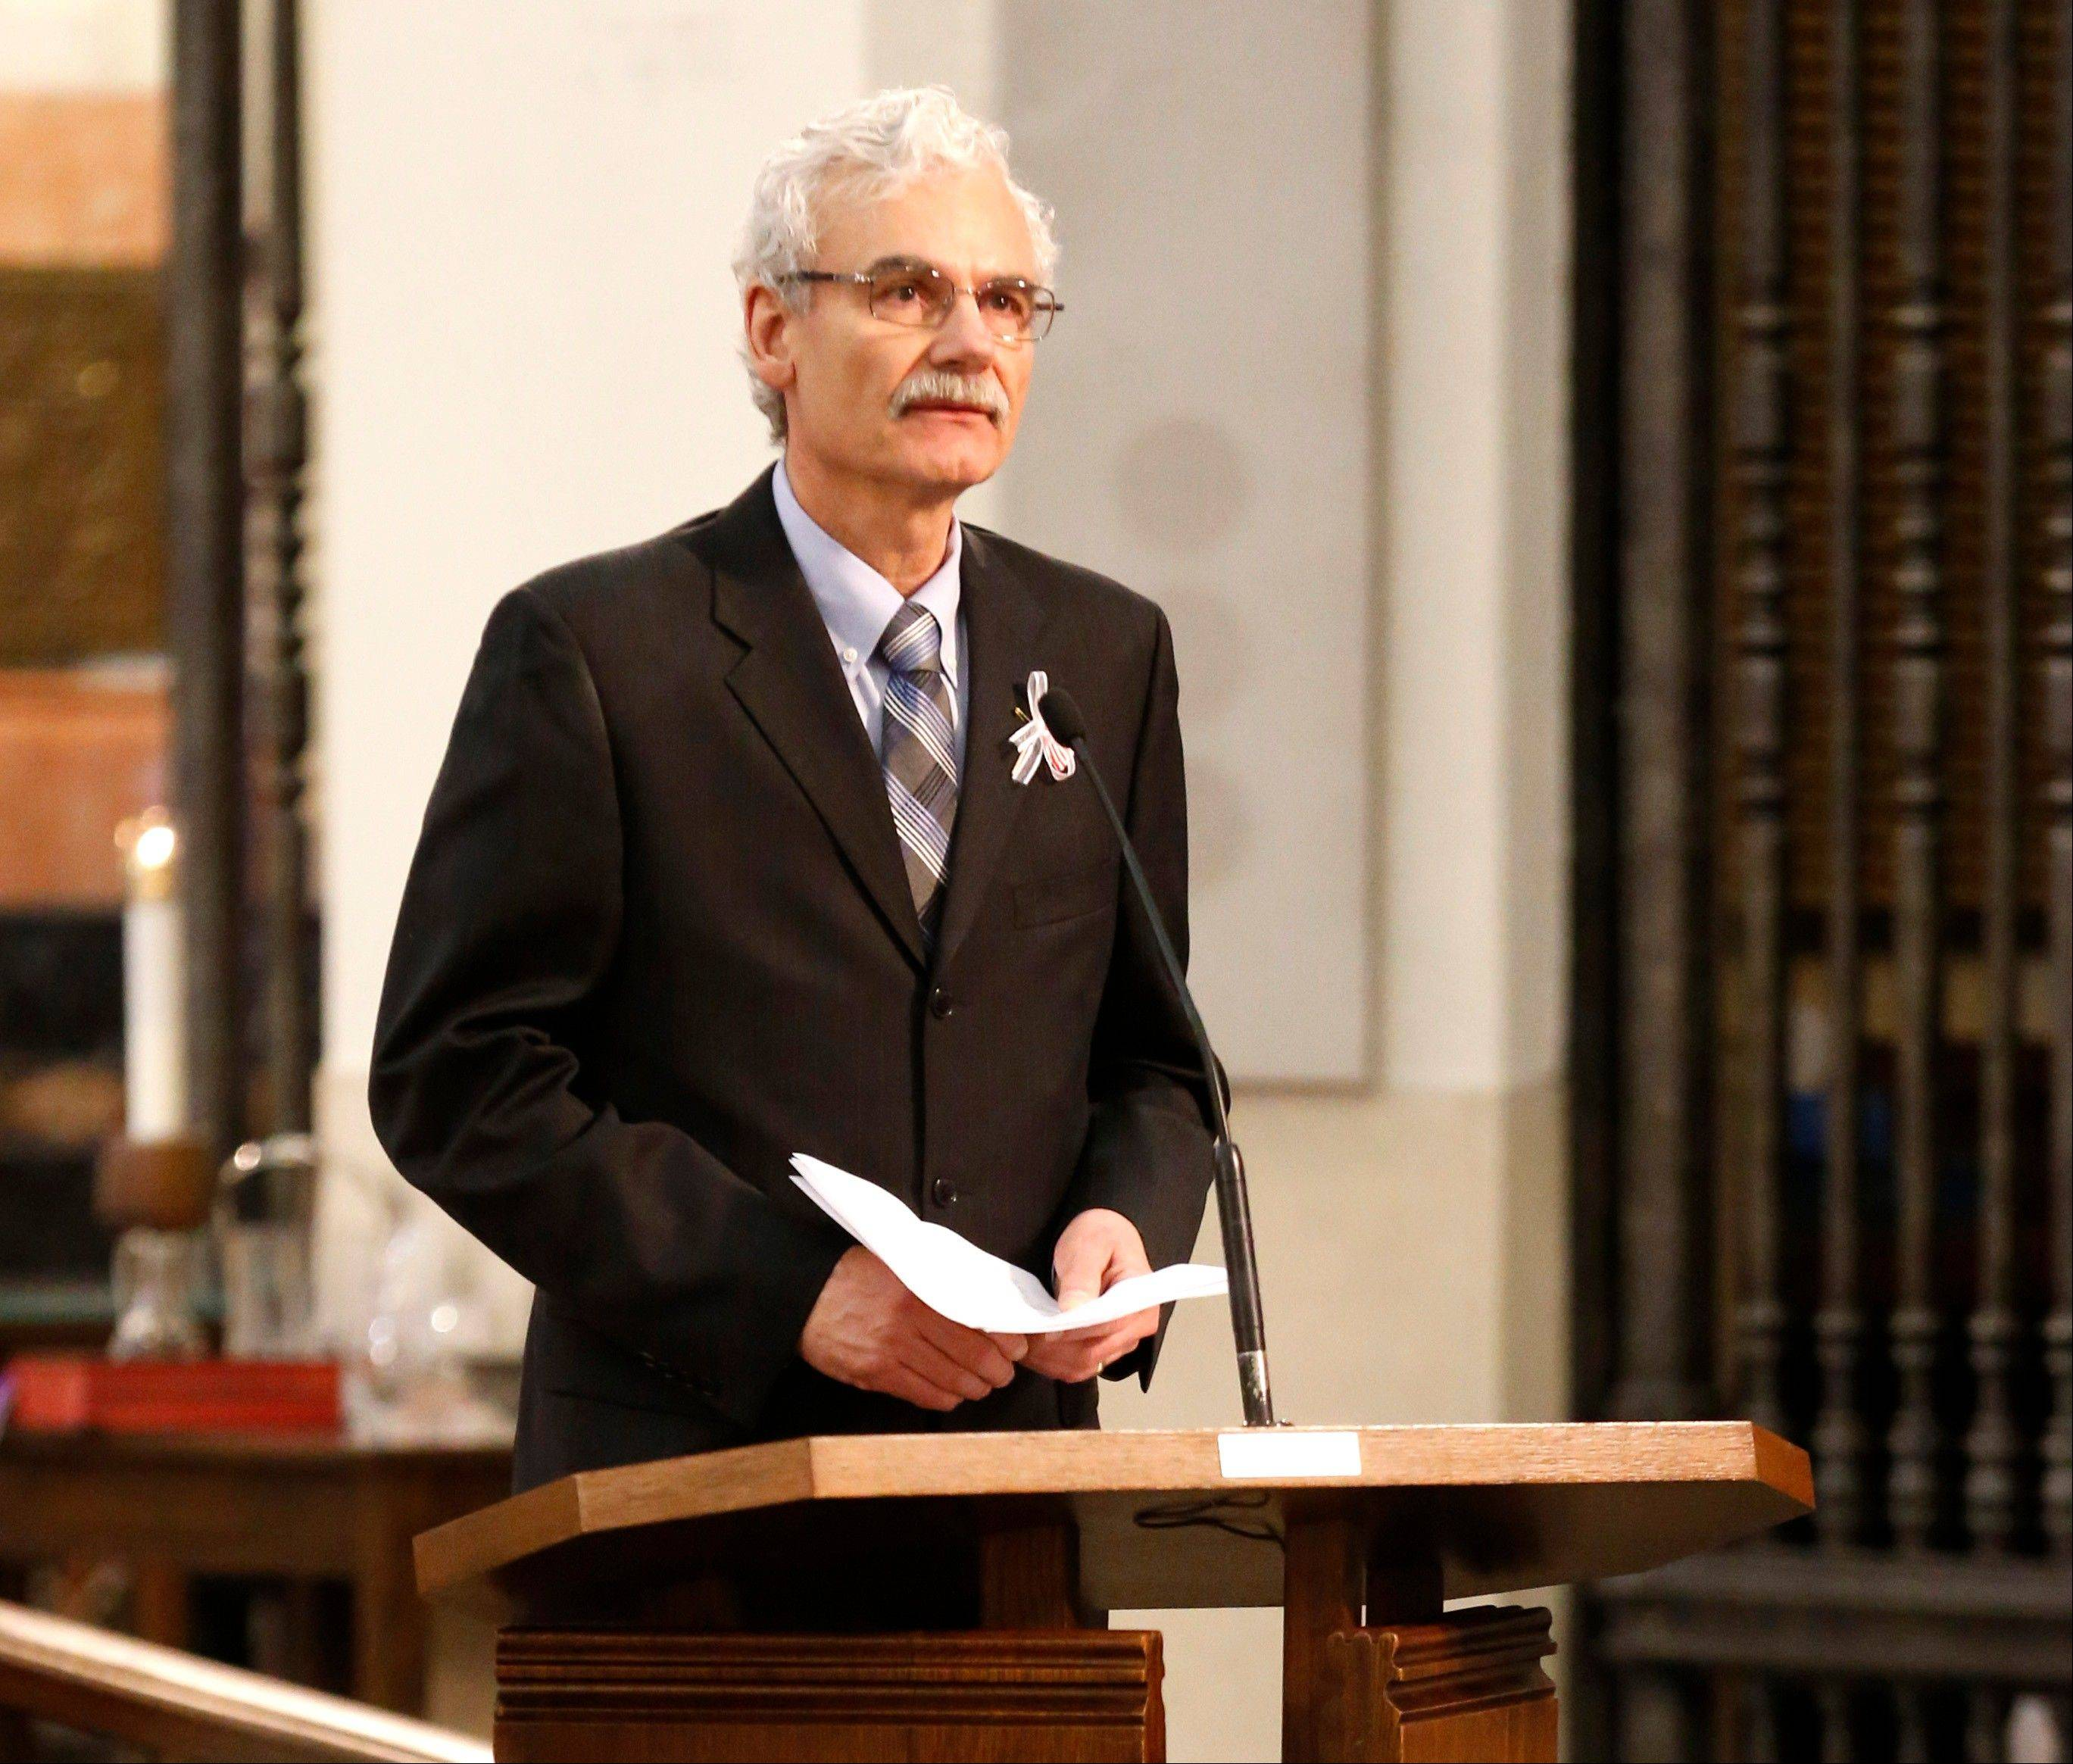 Tom Smedinghoff, father of U.S. diplomat Anne Smedinghoff, eulogizes his daughter Wednesday during her funeral Mass at St. Luke Catholic Church in River Forest.